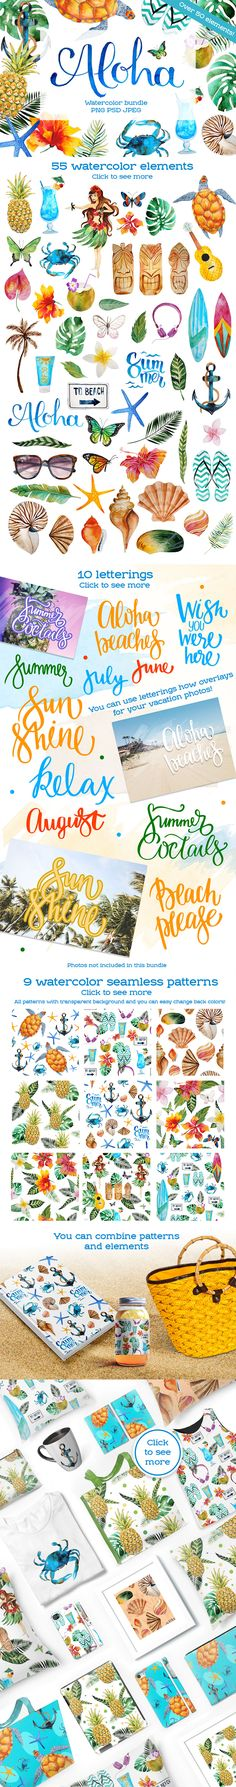 Aloha Watercolor Elements - Part of The Neverending Bundle of Superior Quality Designs